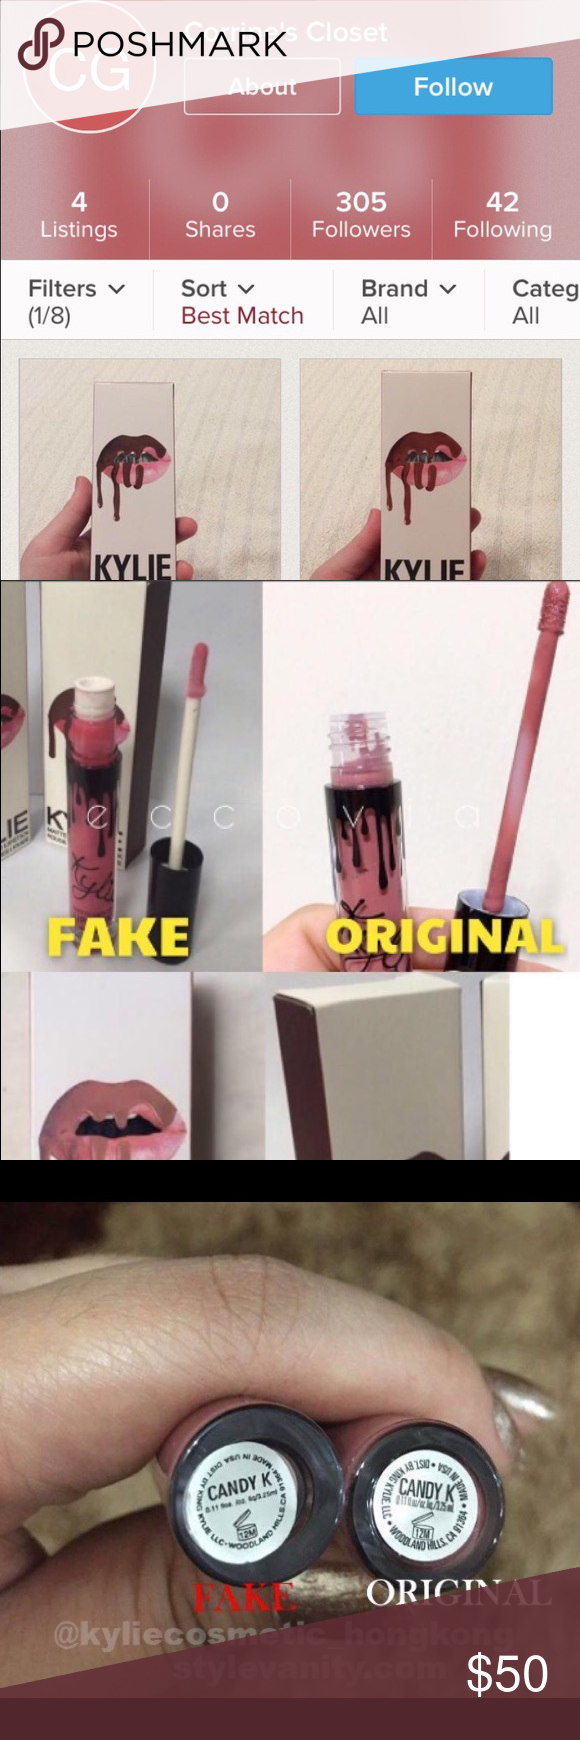 Beware Fake Kylie I bought a kit from her on Merch it's fake. Sticker the bottom of lipstick is crooked. The lipstick stick is white and not clear. Just wish the item description would have said Kylie isn't authentic. Kylie Cosmetics Makeup